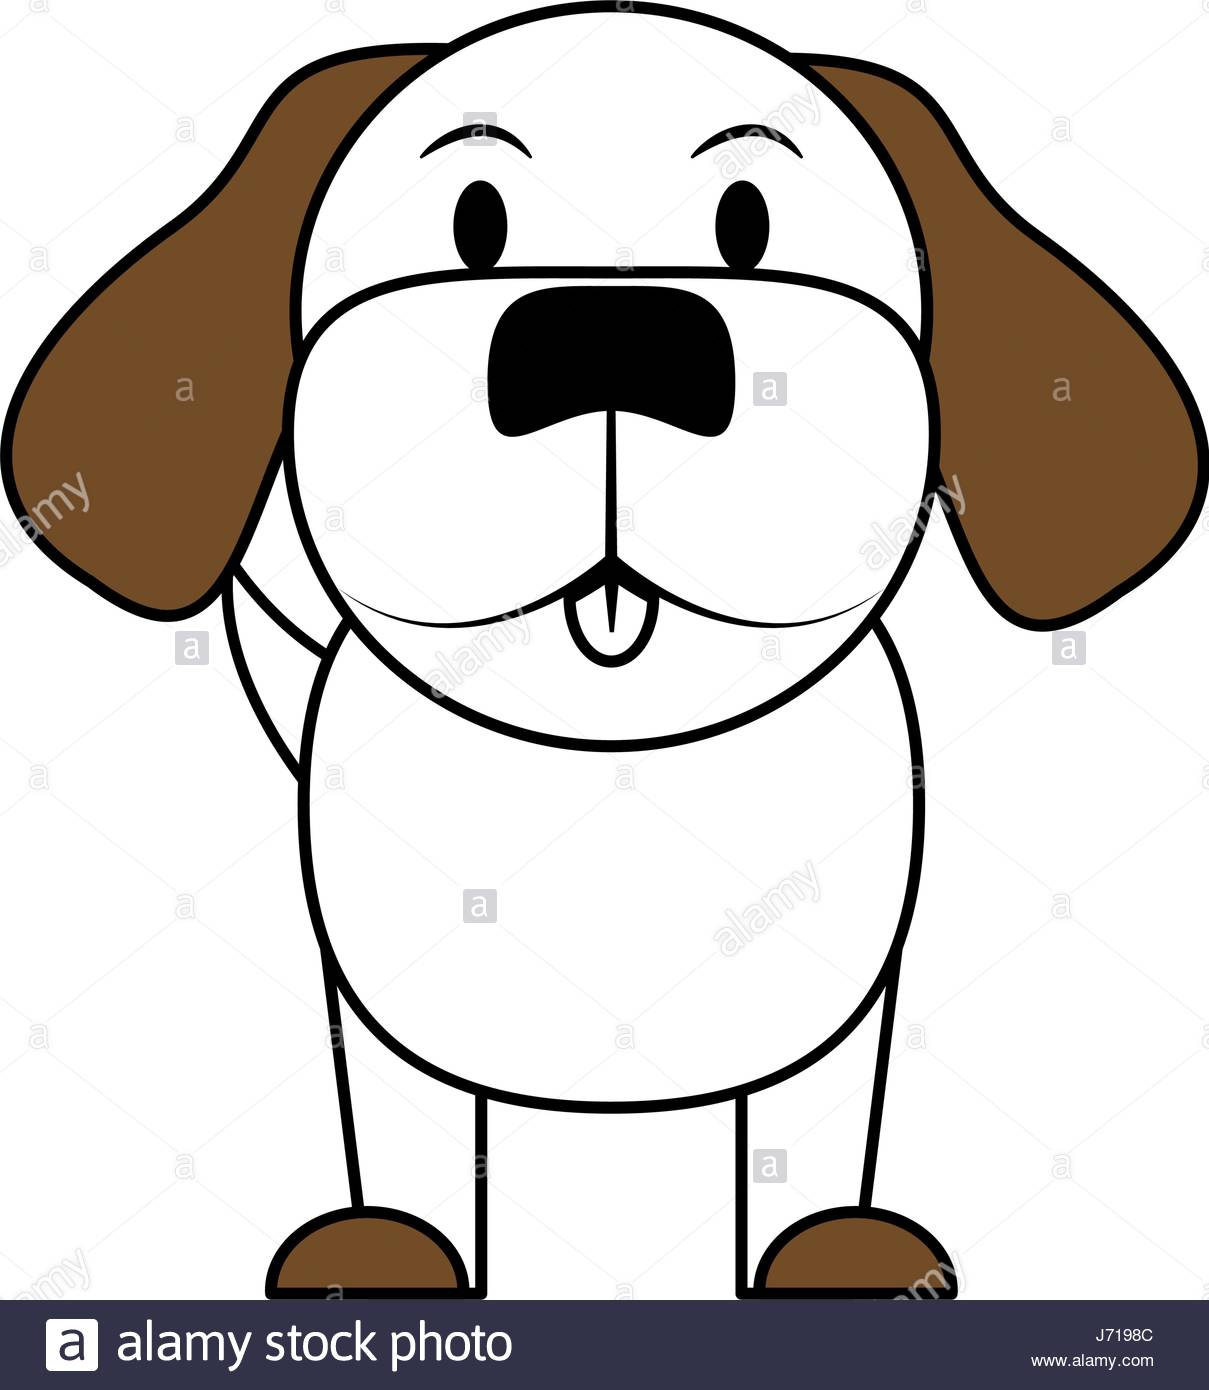 1209x1390 White And Brown Silhouette Of Cartoon Front View Dog Animal